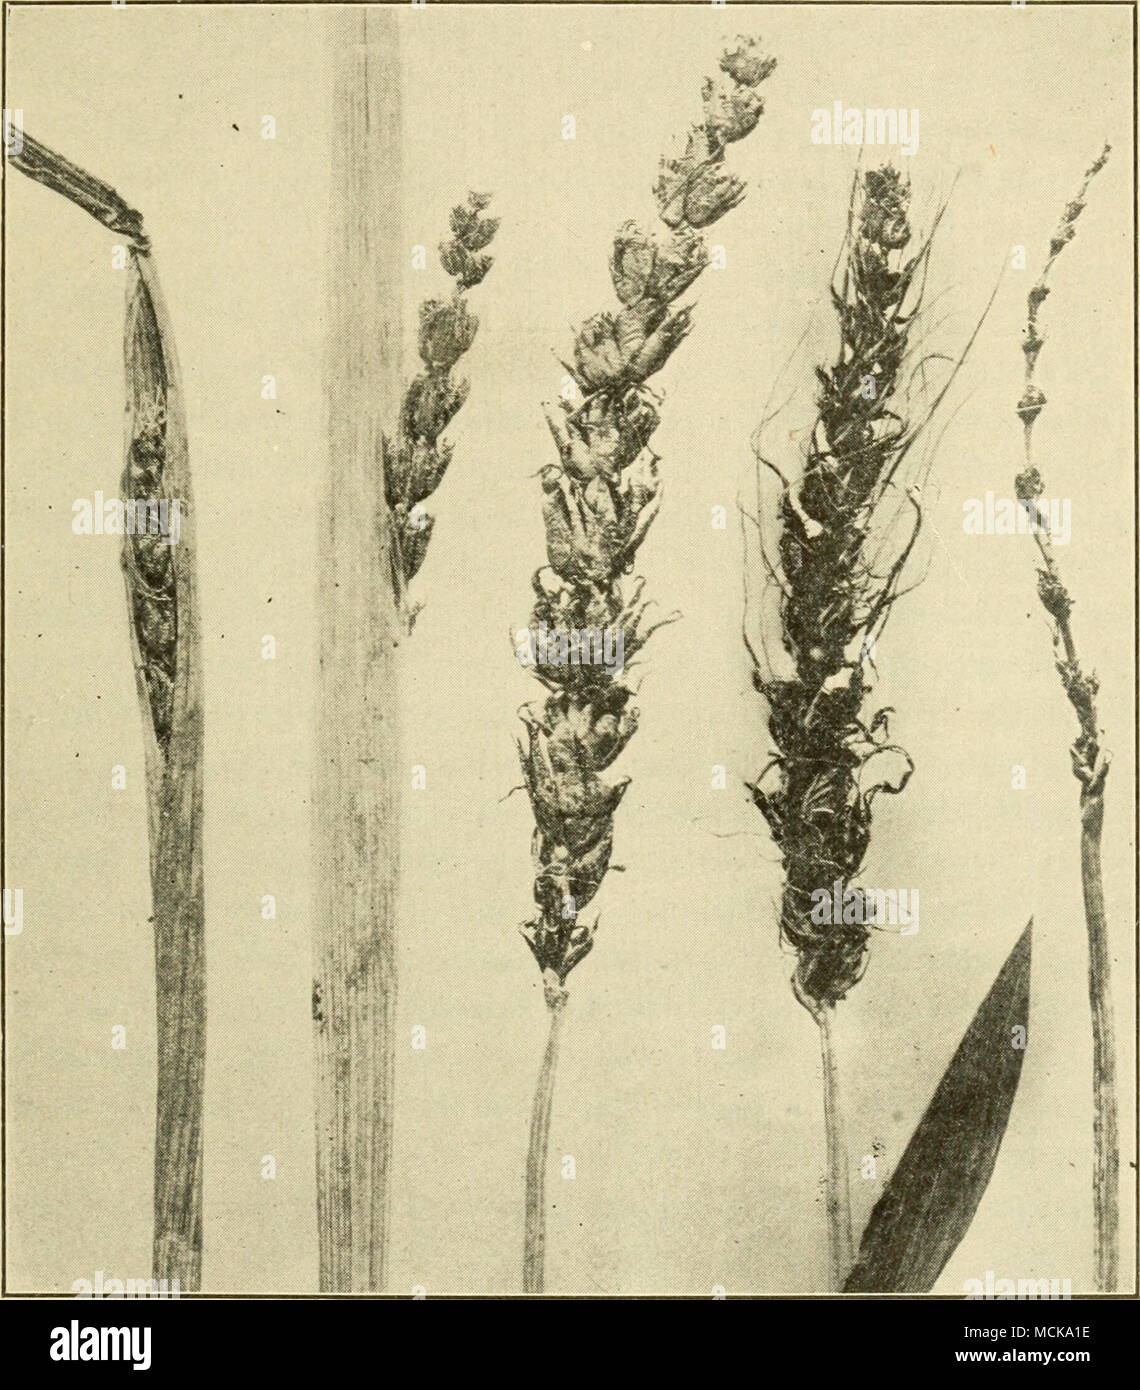 . Fig. 147. — Loose-smut of barley in various stages of development. After Johnson. the plant developing from such an infected seedling the disease does not show externally until the smut ripens at the next blossoming season. The life history of this smut is thus similar to that of - Stock Image